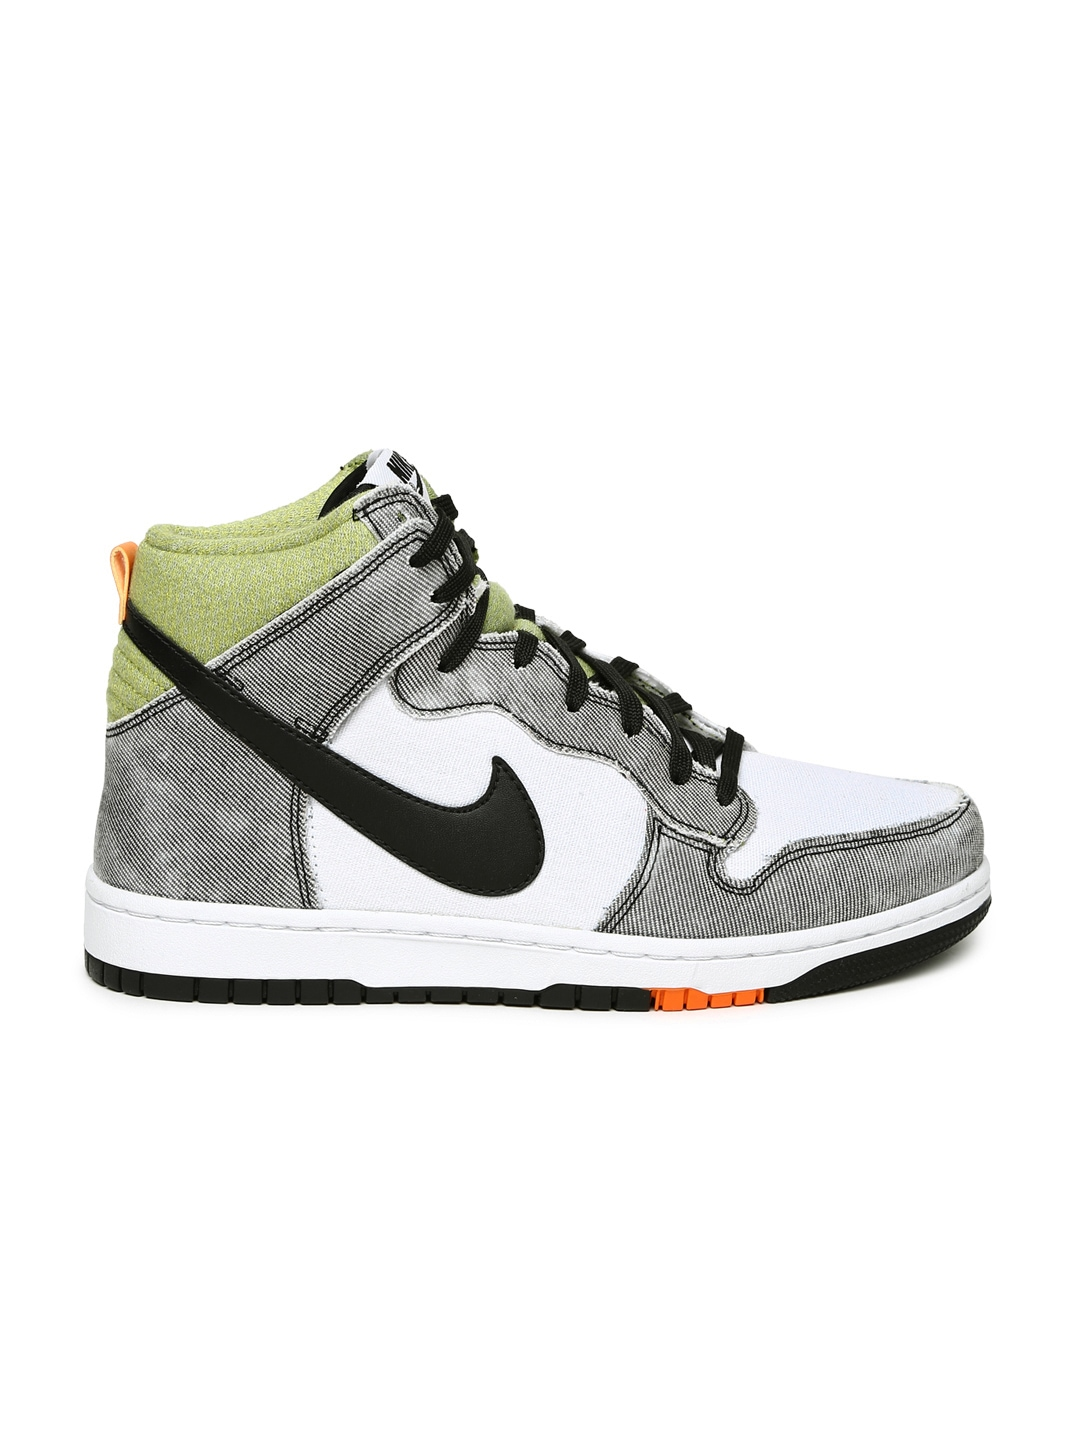 myntra nike white grey dunk cmft casual shoes 844634